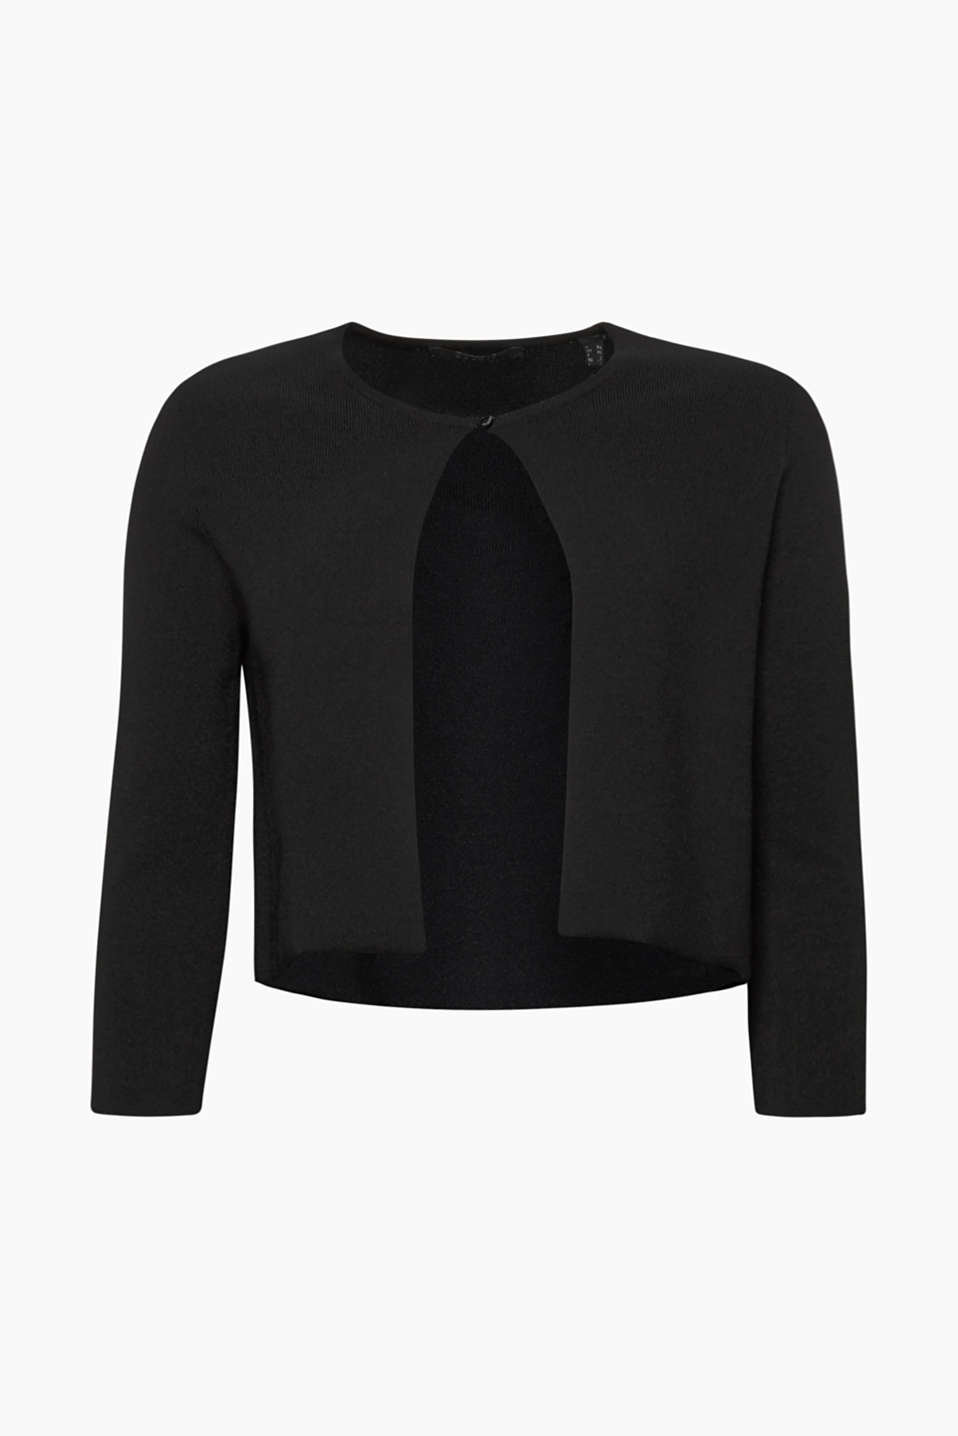 This fine knit bolero in compact crêpe yarn with three-quarter length sleeves will complete your little black dress!